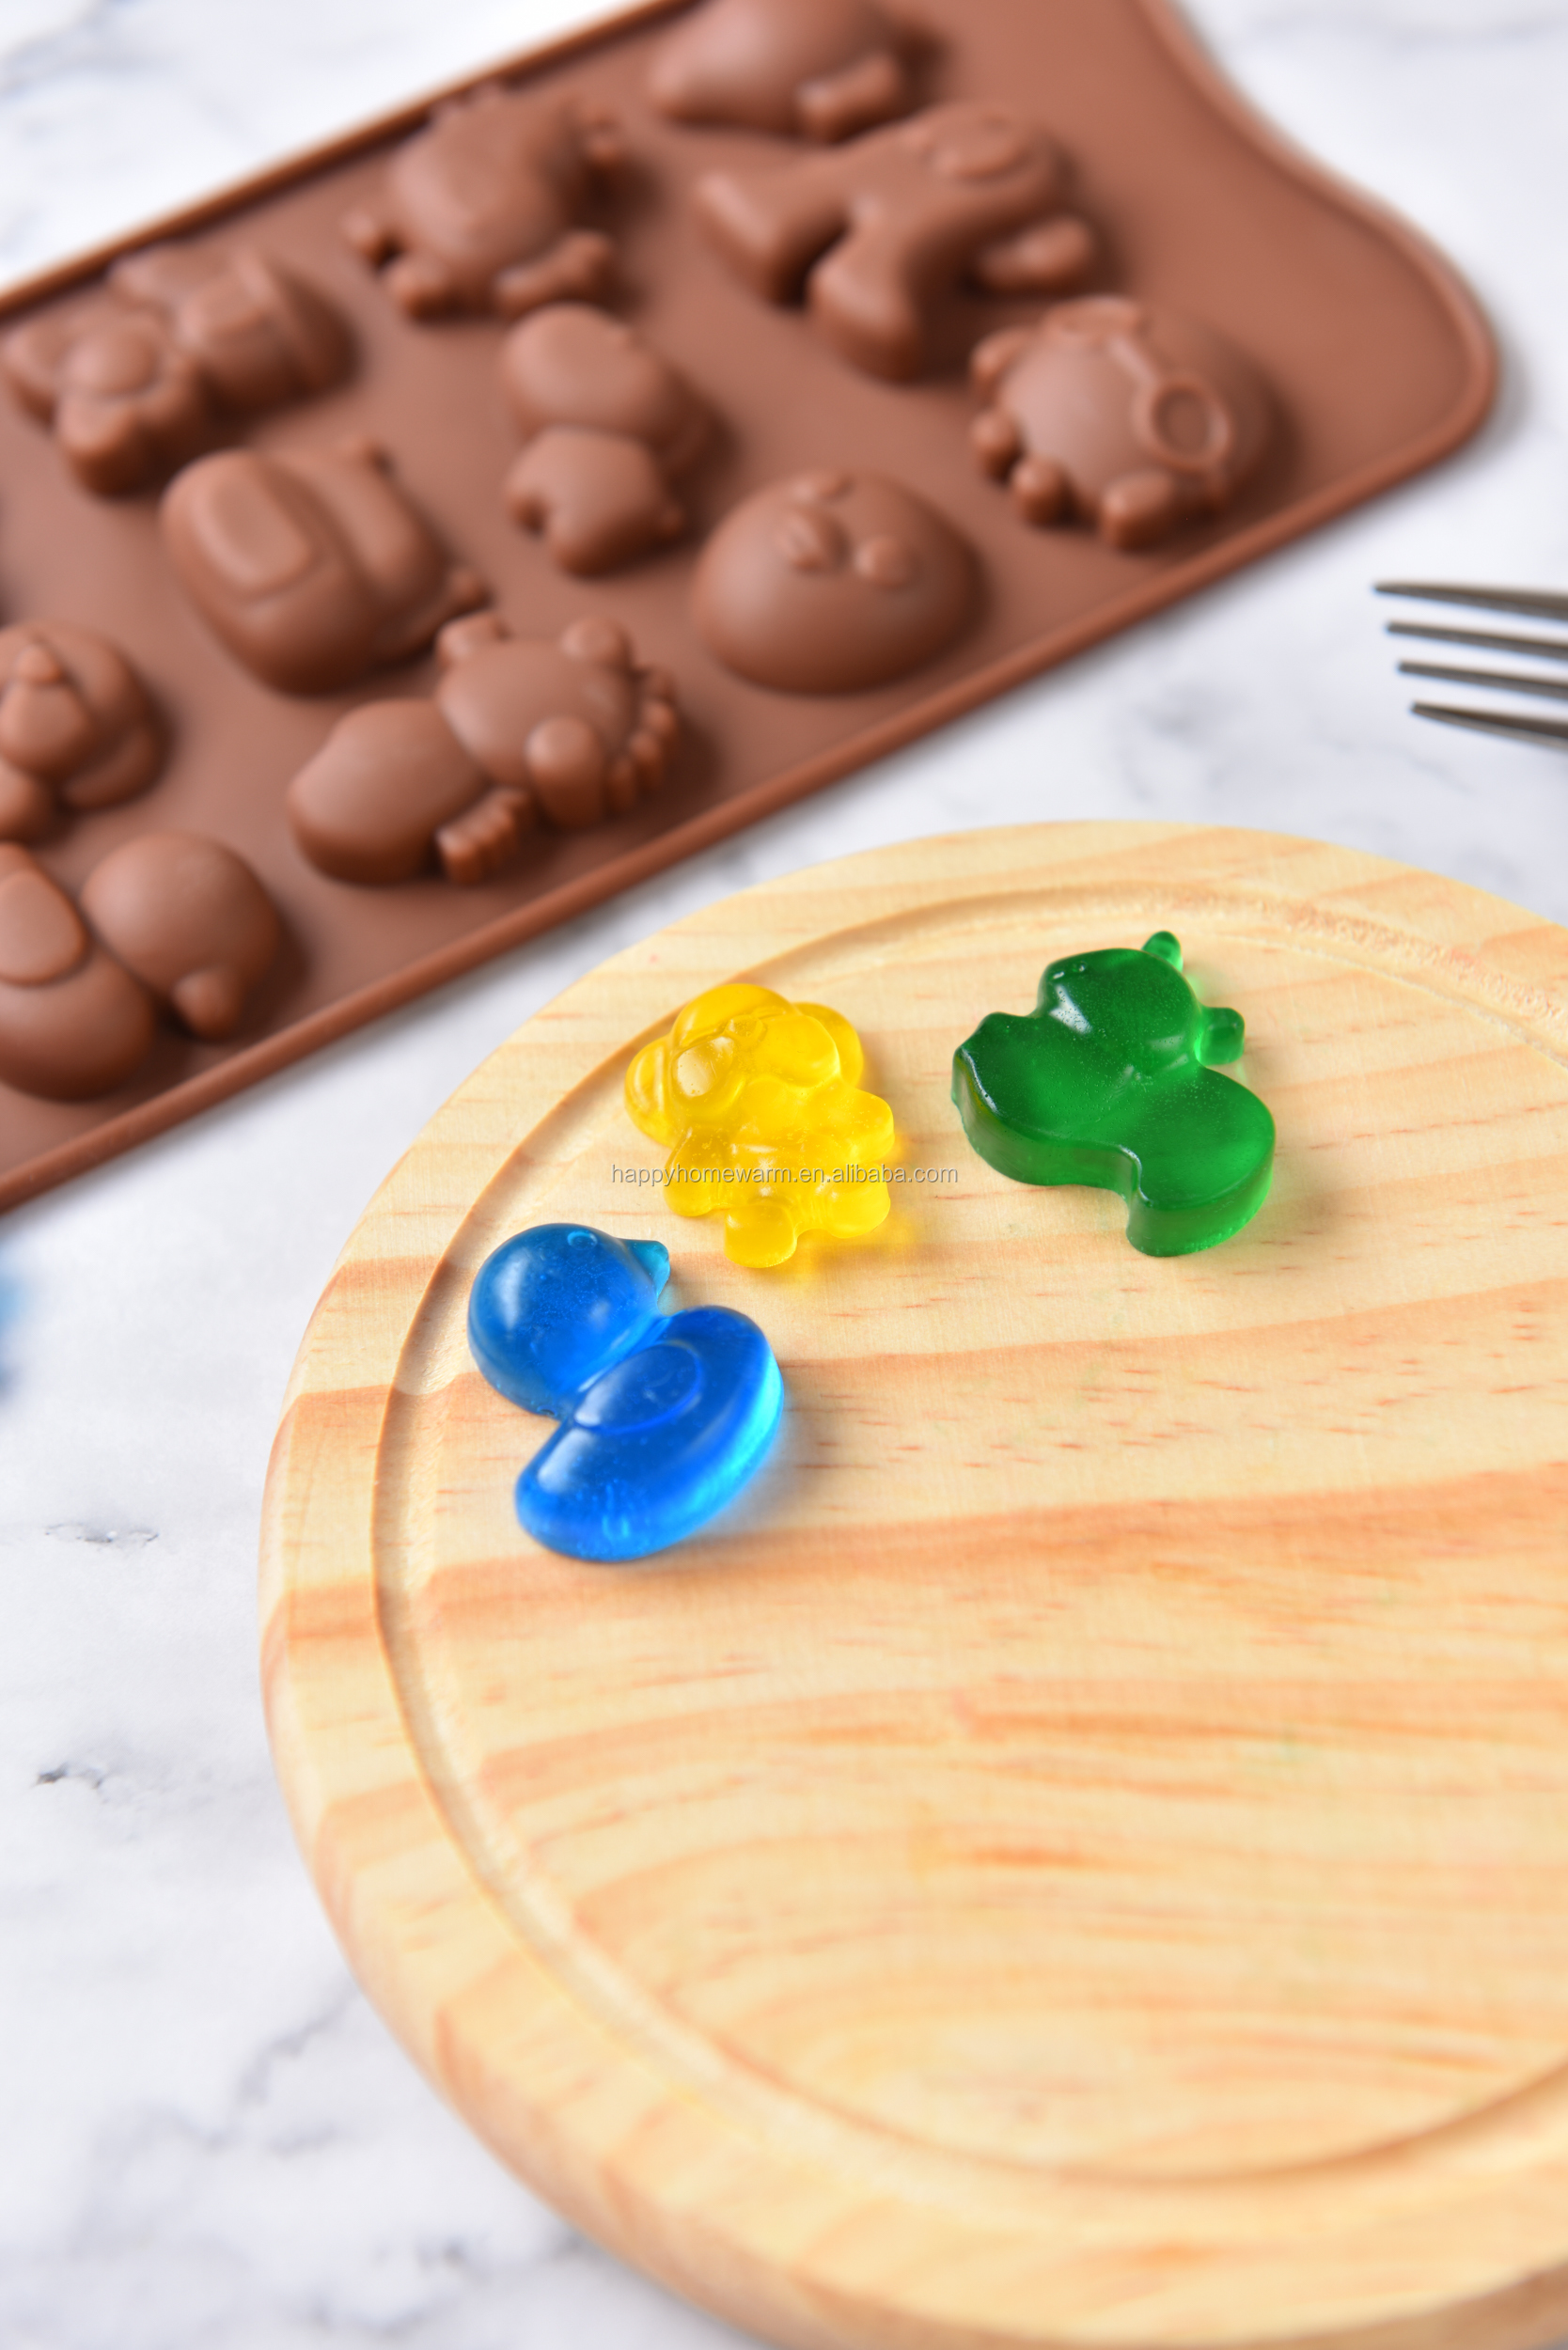 Eco-Friendly 12 Cavities Duck Jelly Baking Muffin Mold Cake Pan Ice Candy Soap Tray Silicone Bakeware Chocolate Mould